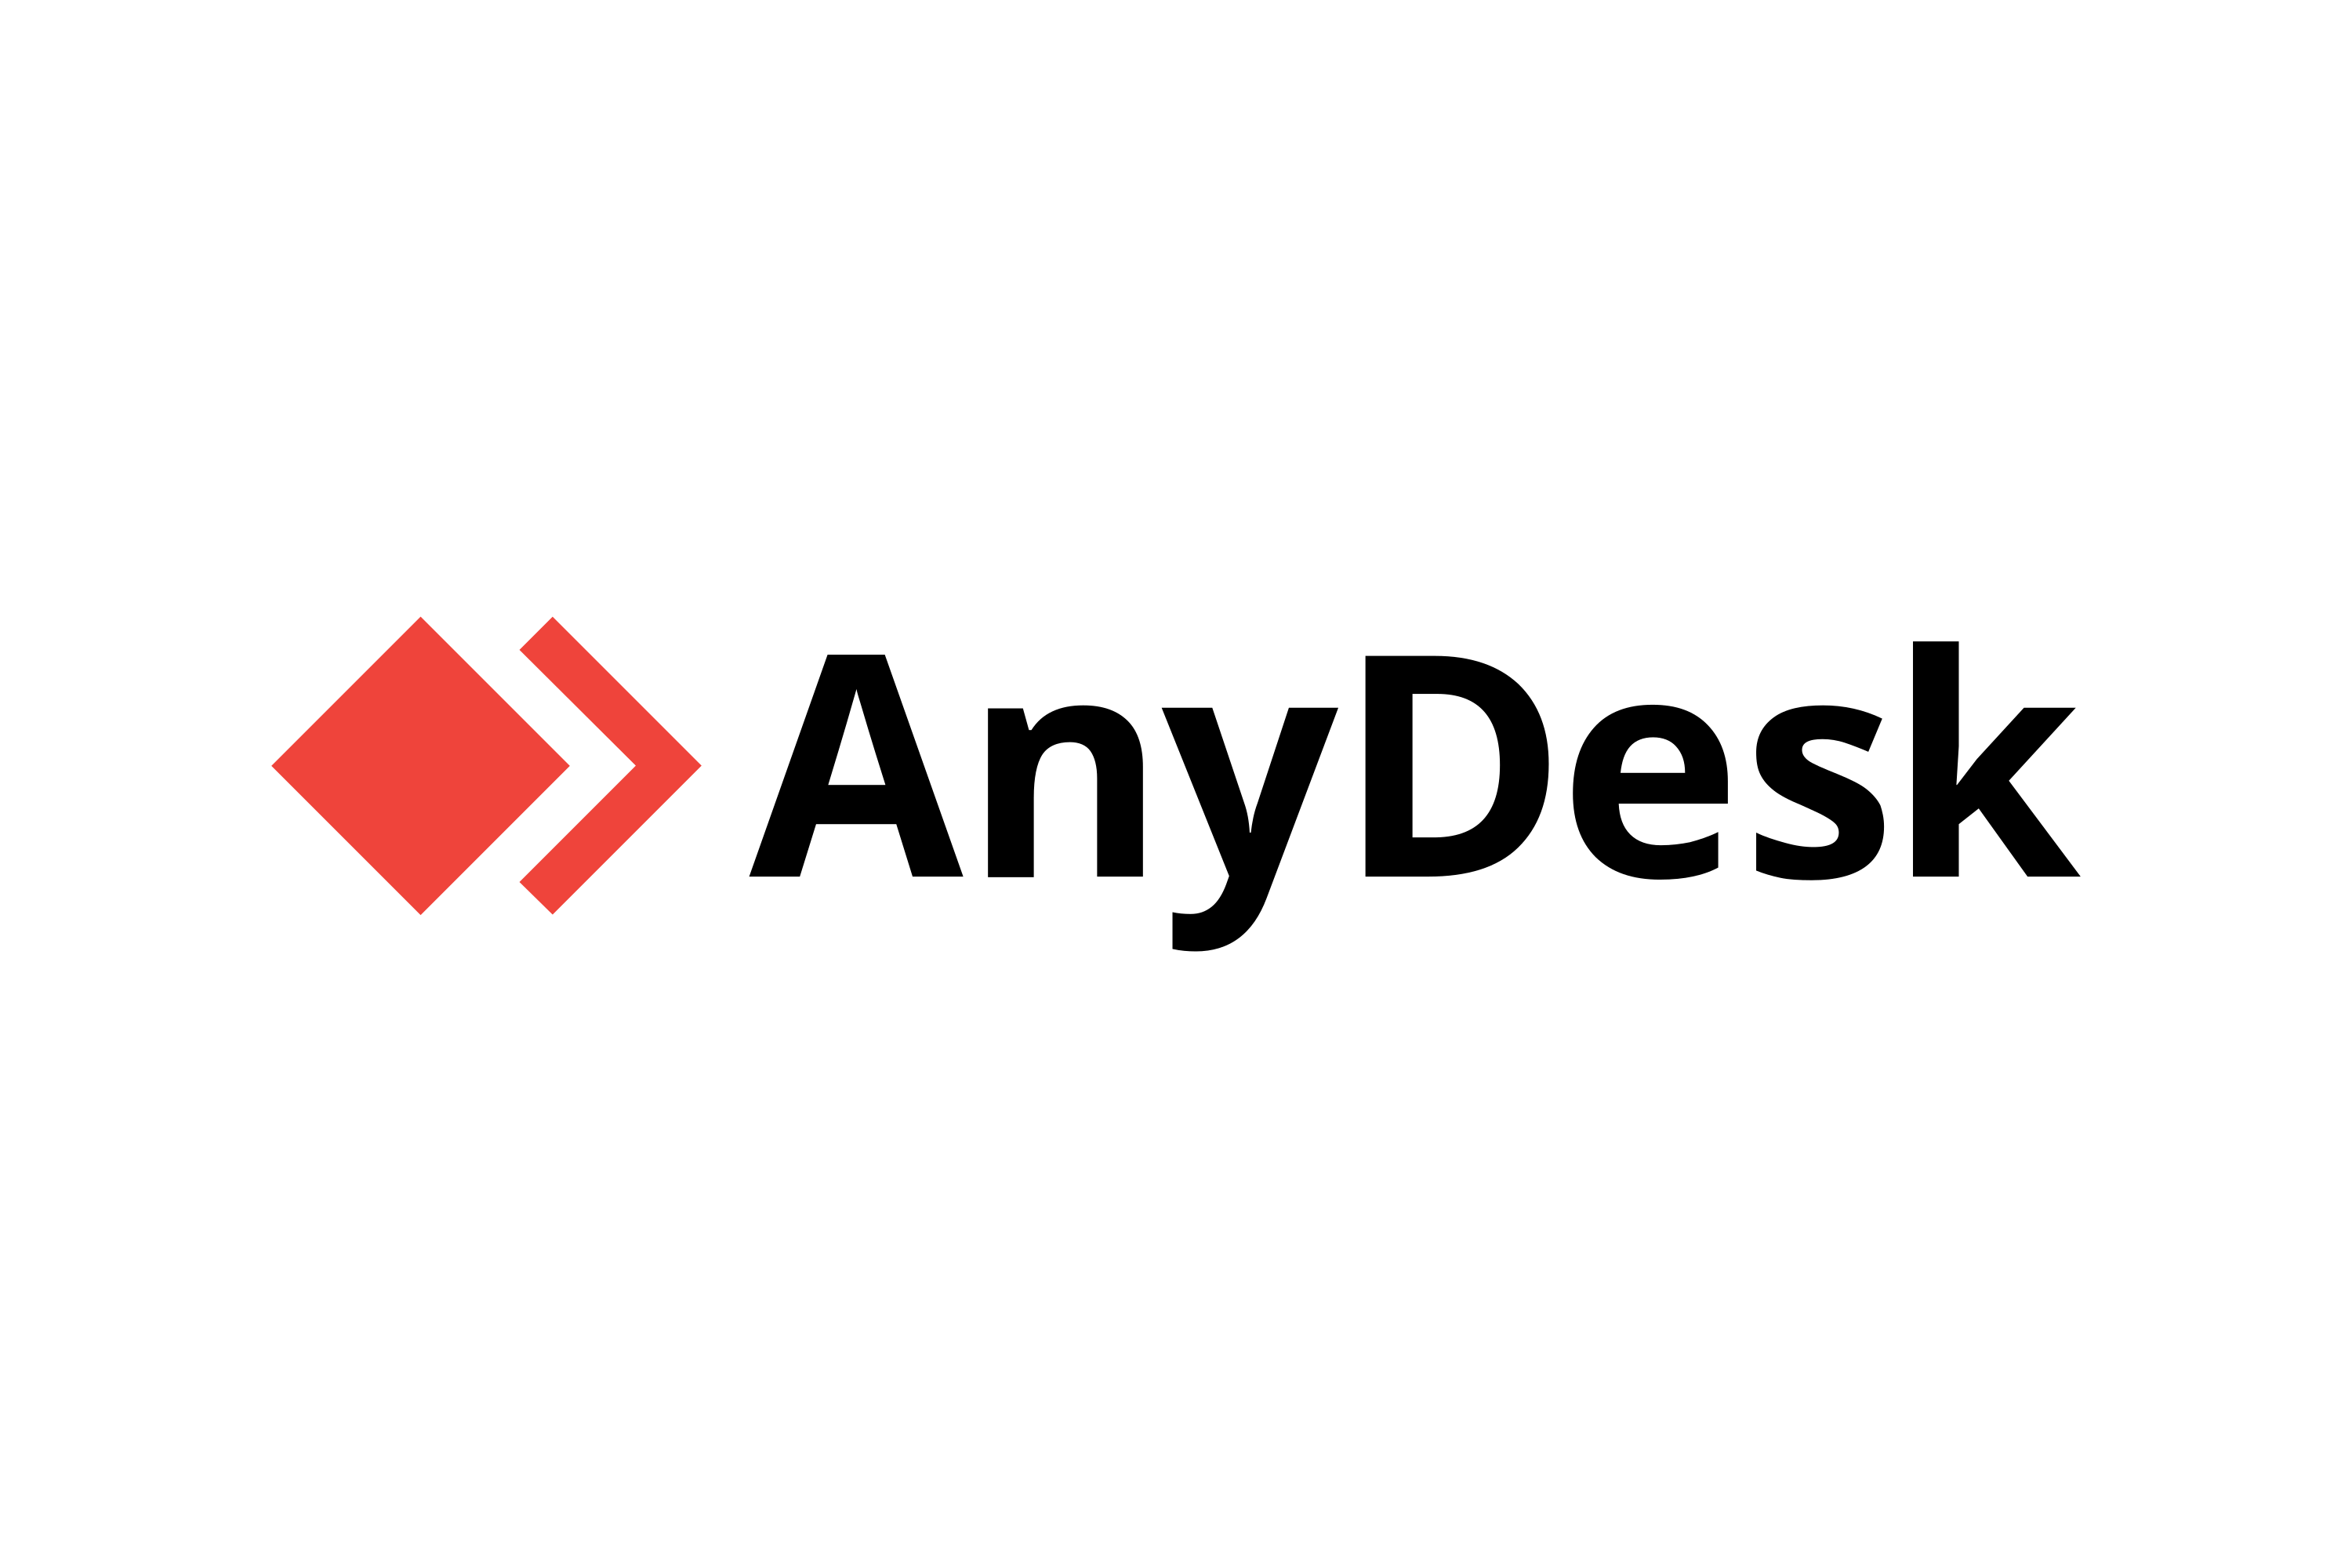 AnyDesk Releases Version 6 of Their Remote Desktop Software